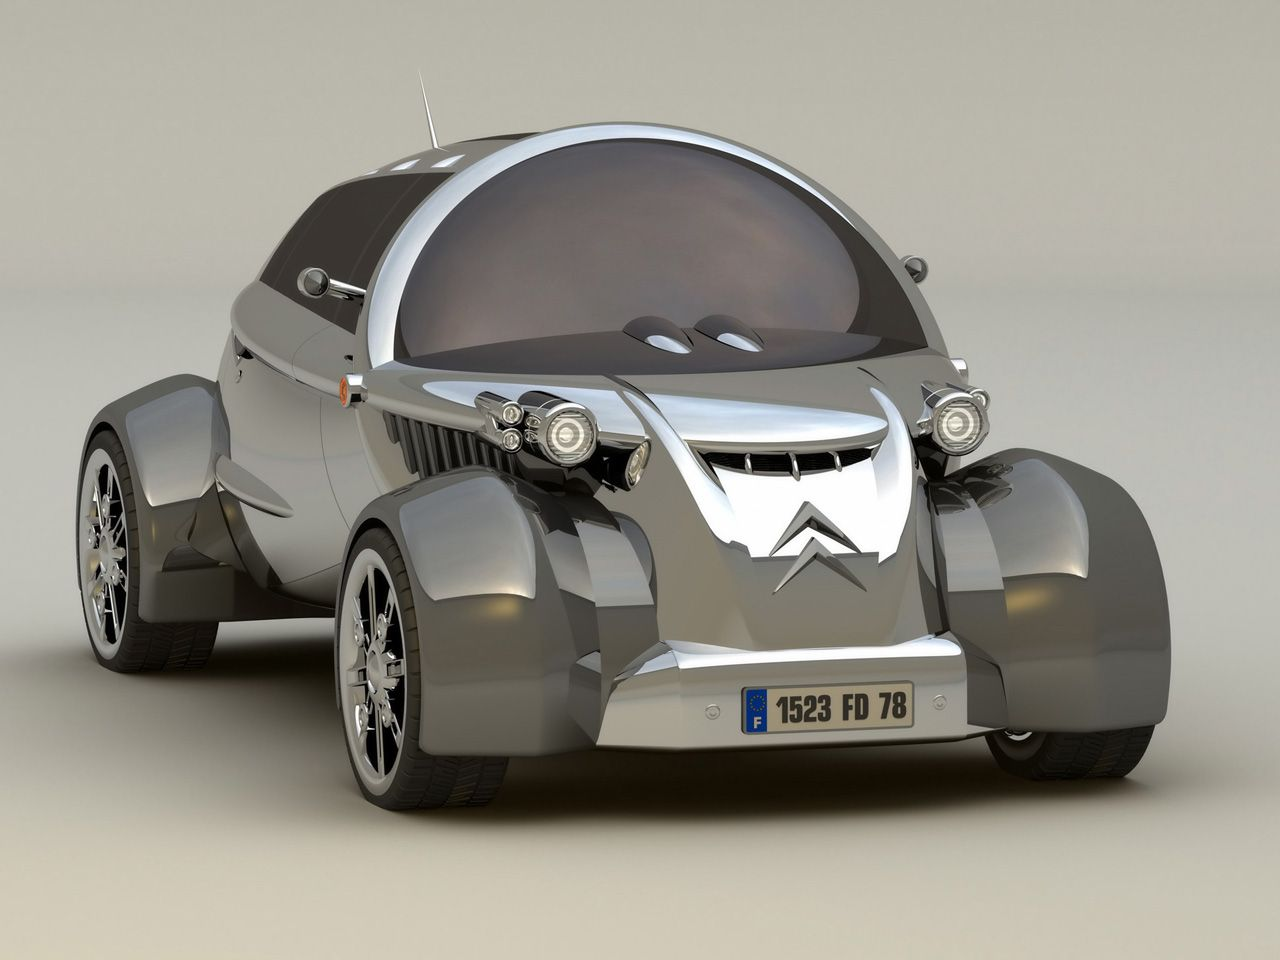 Hot Car Pictures Gallery Citroen Cv2 Concept Car Photo